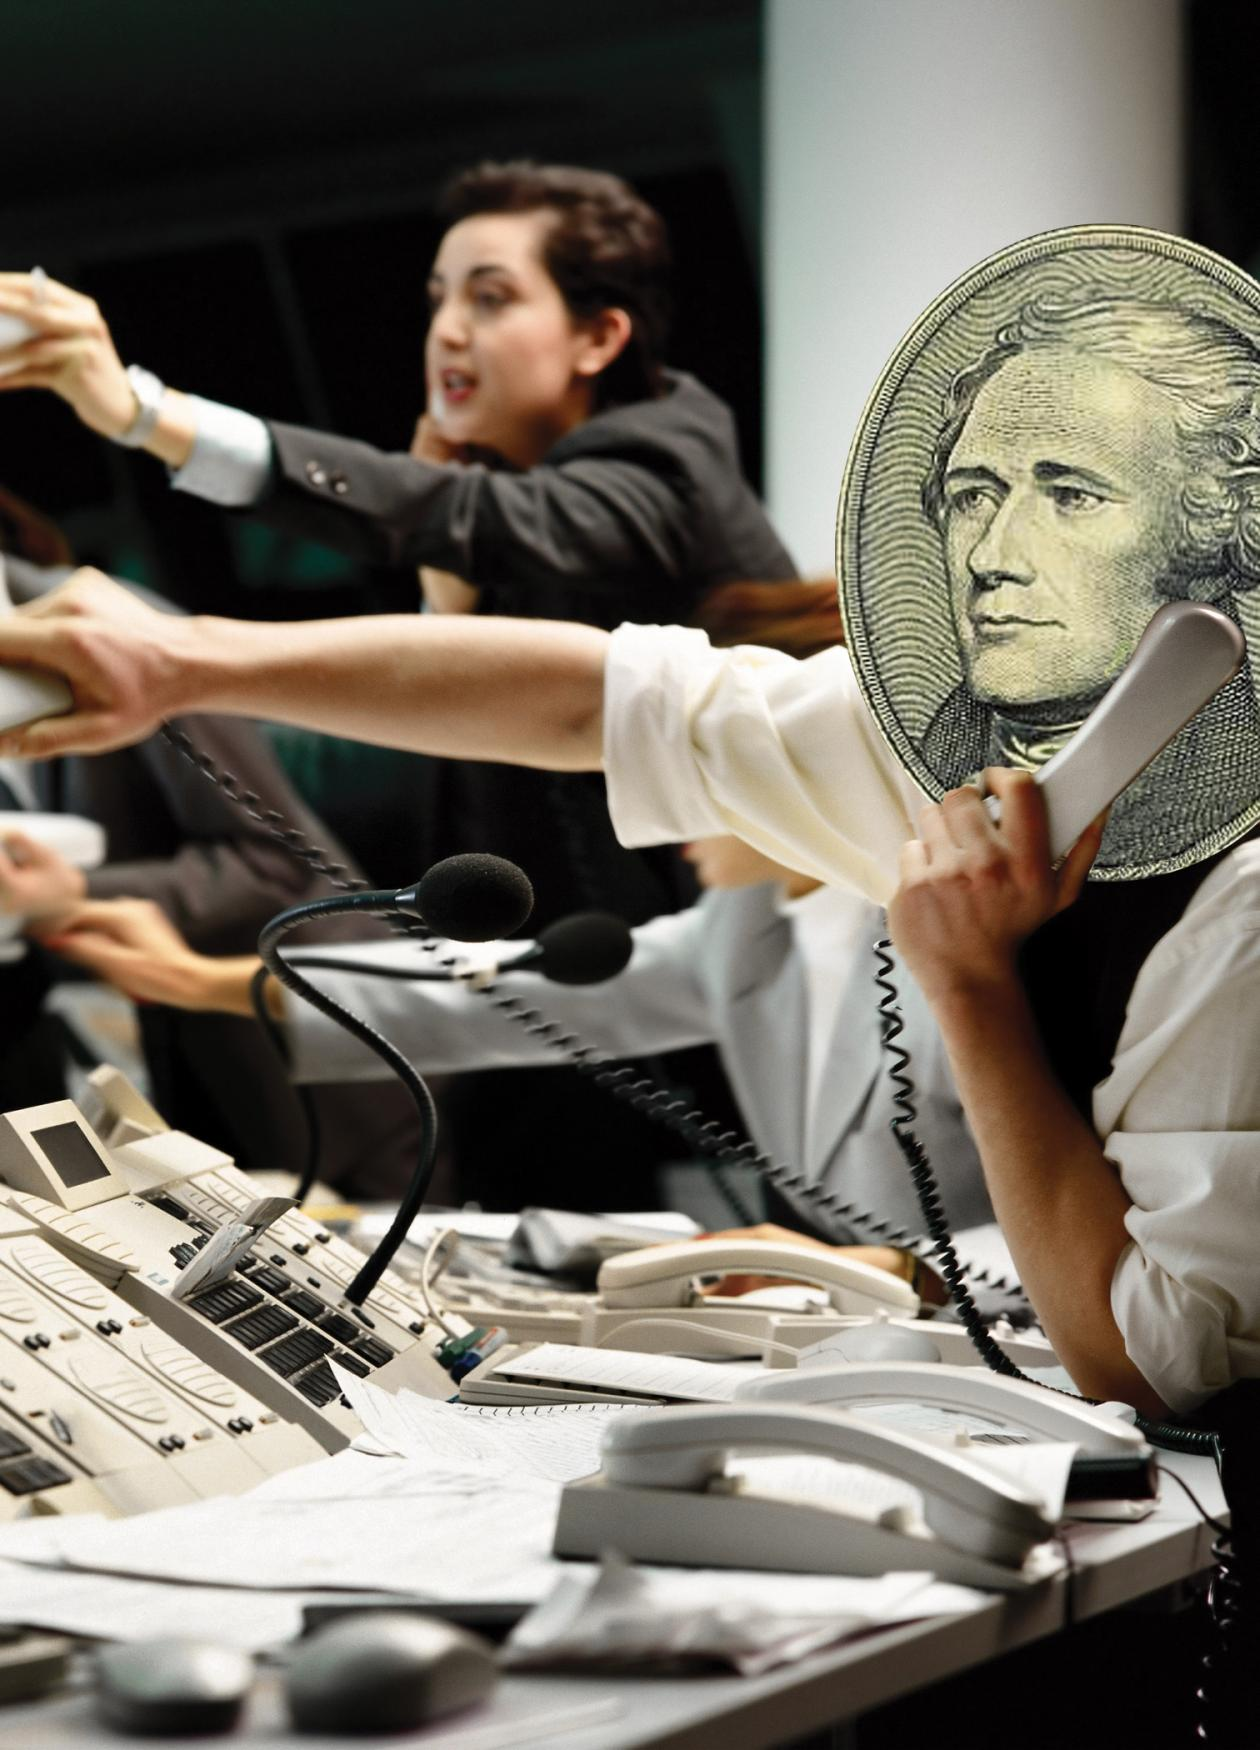 image of stock traders, Alexander Hamilton's head superimposed over one person